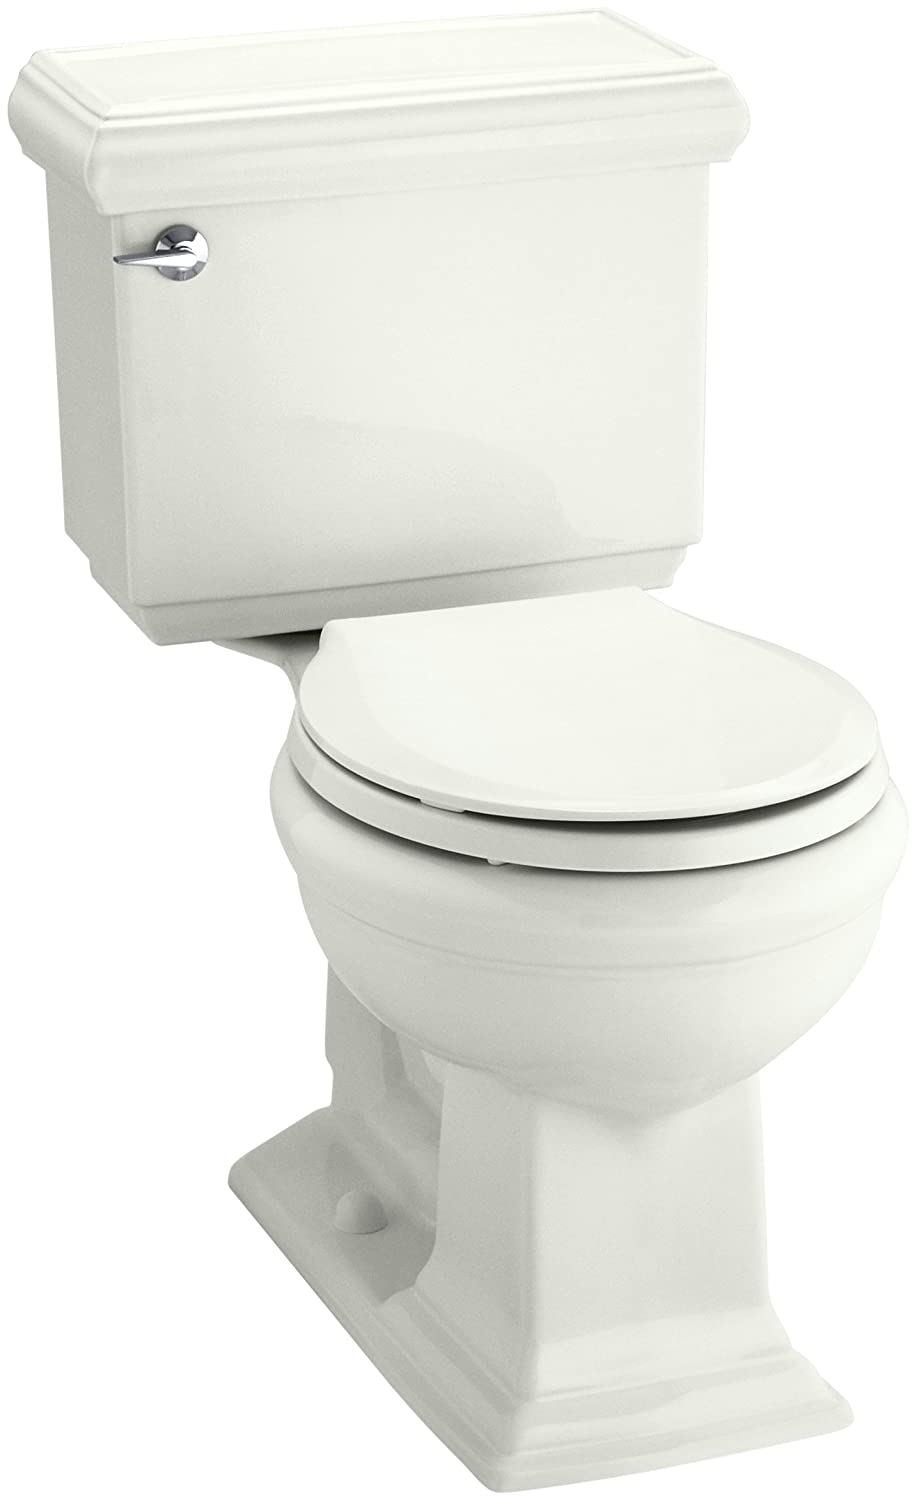 Superb Kohler 3986 U 0 Memoirs Classic Comfort Height Two Piece Round Front 1 28 Gpf Toilet With Aquapiston Flush Technology Insuliner Tank Liner And Beatyapartments Chair Design Images Beatyapartmentscom